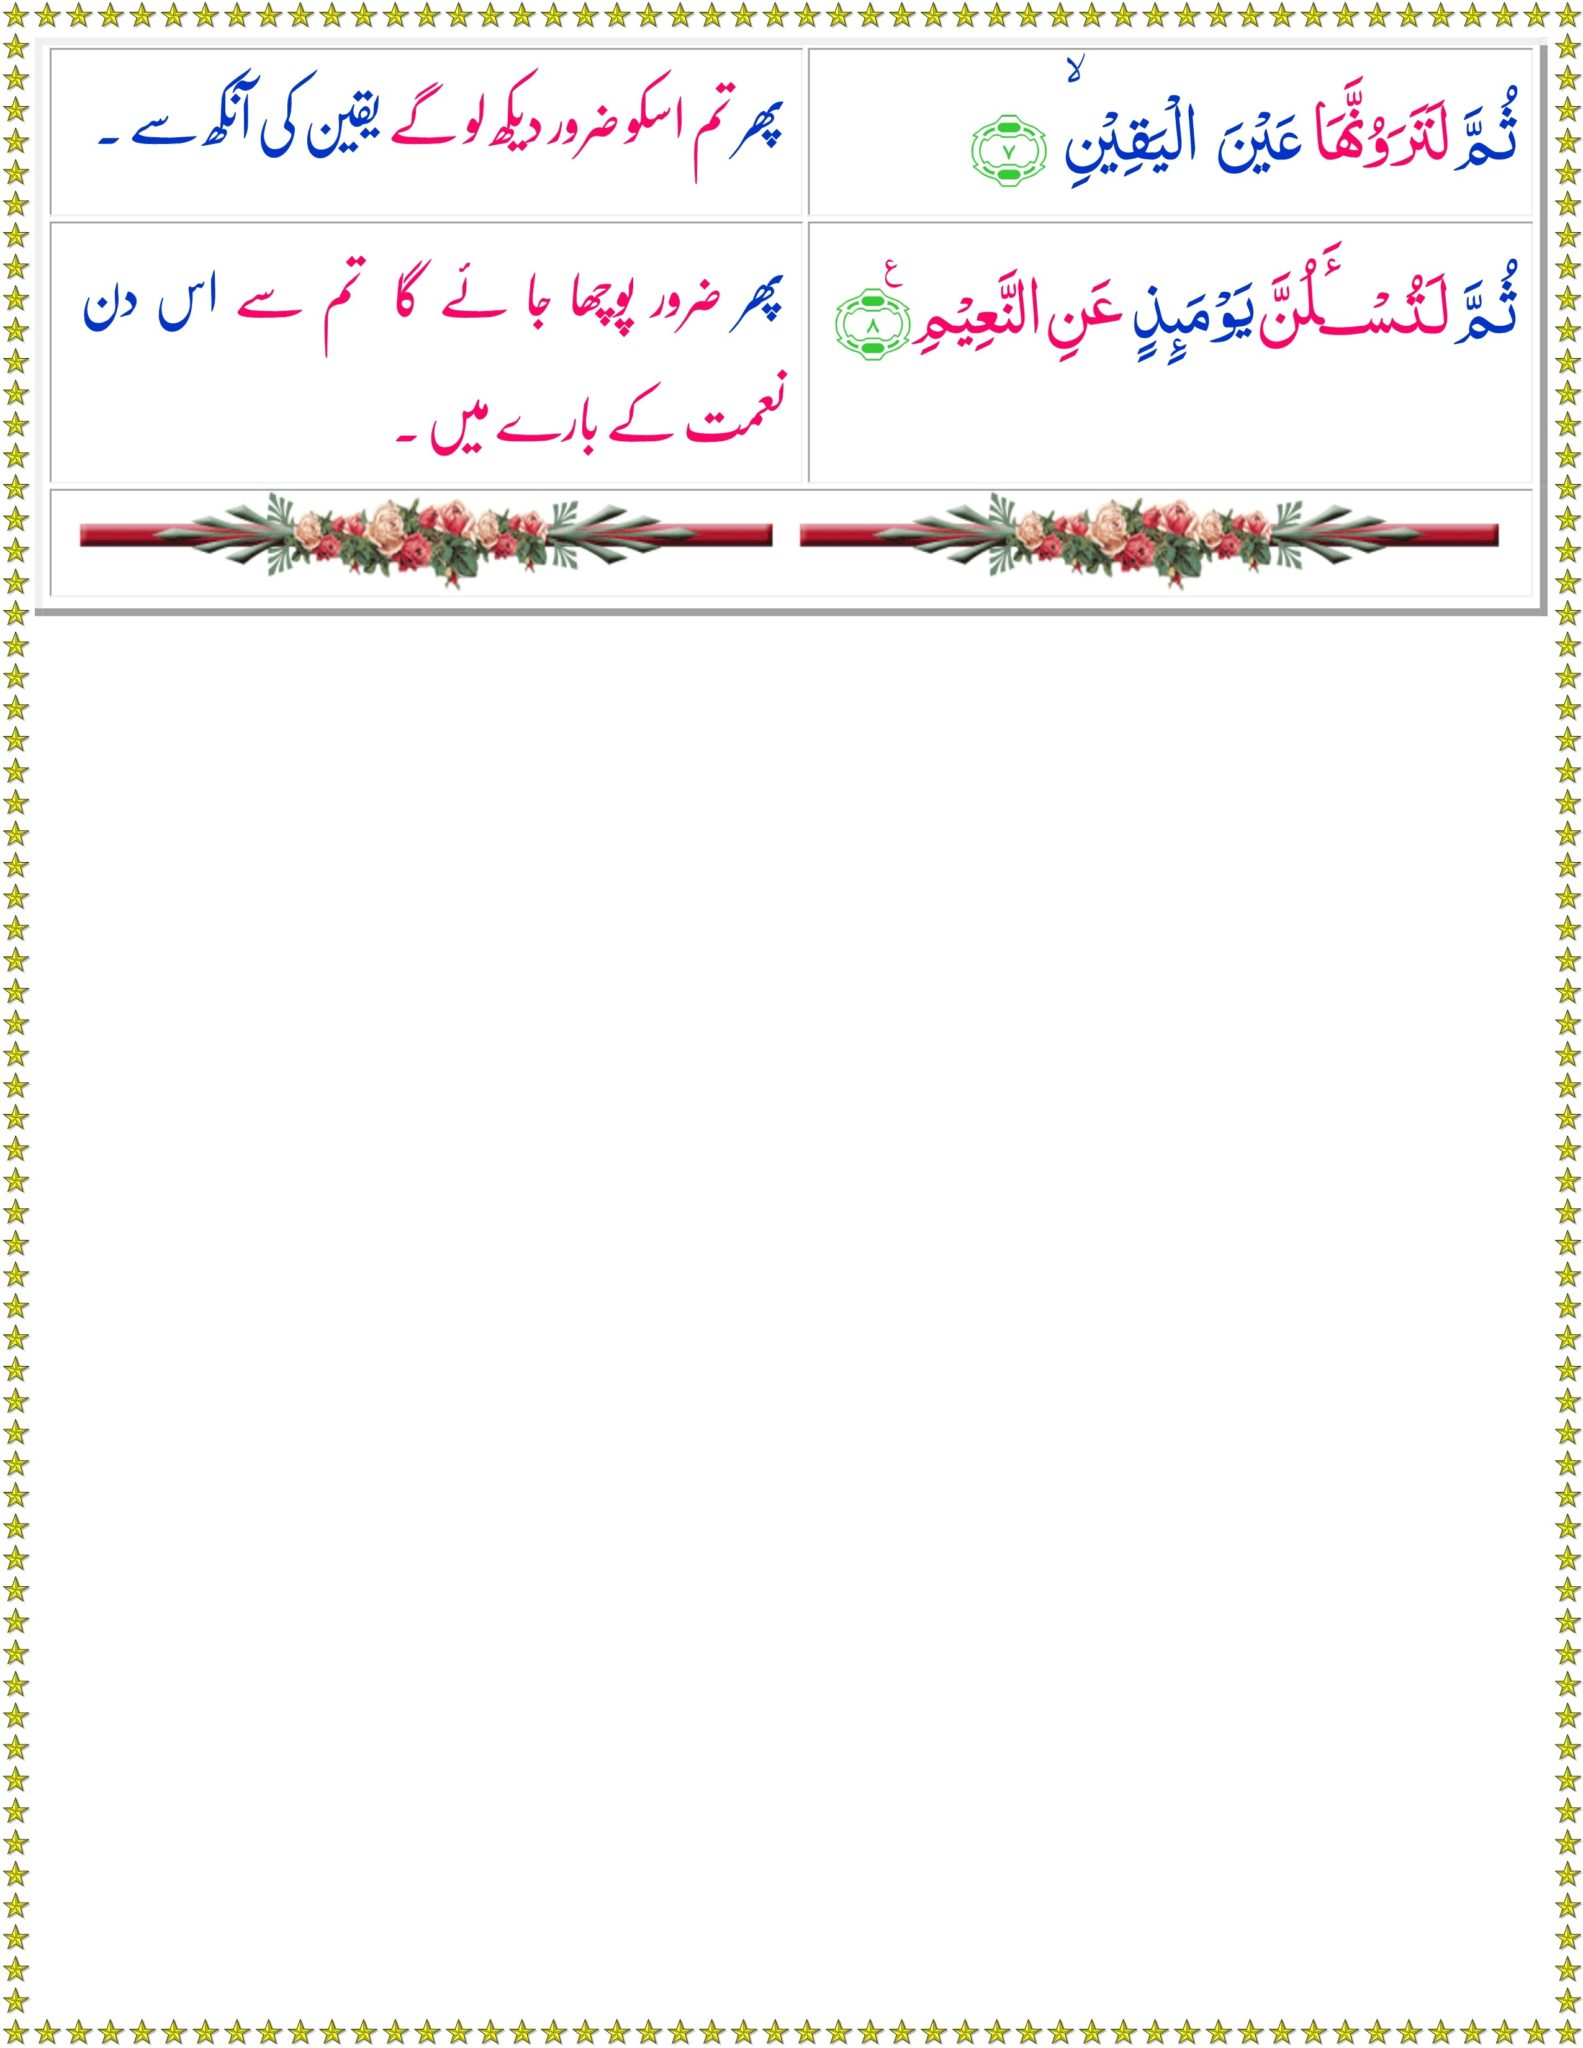 Surah At Takasur translation in Urdu, Hindi